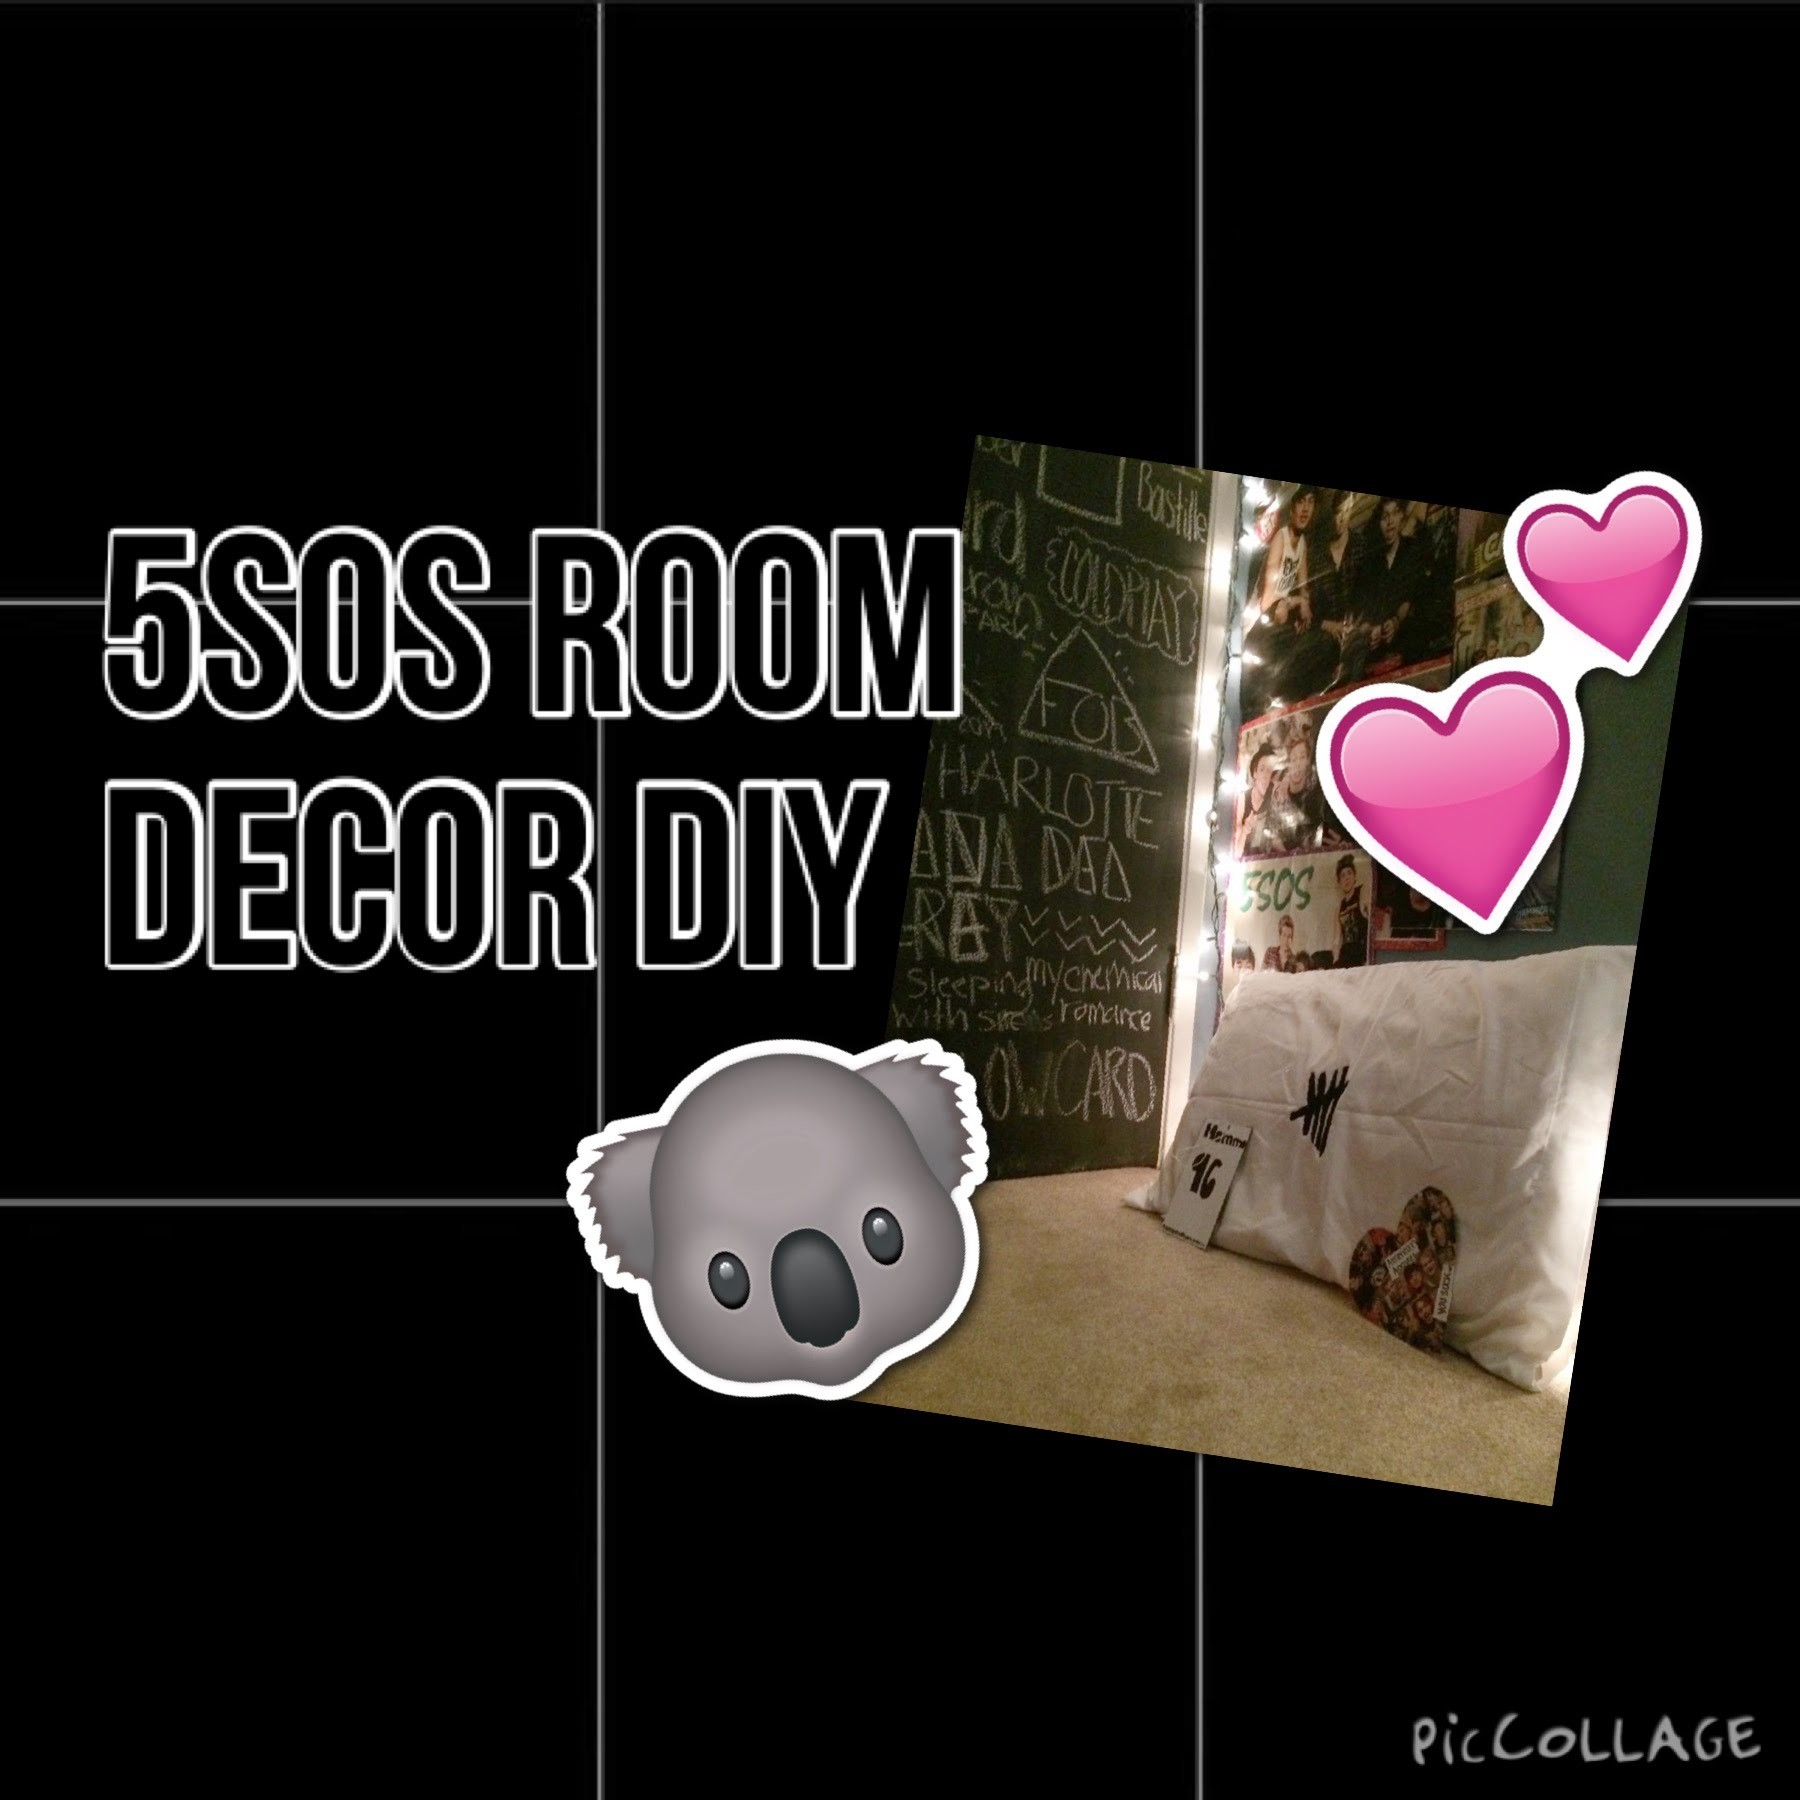 5sos Room Decor Diy Youcompletemess